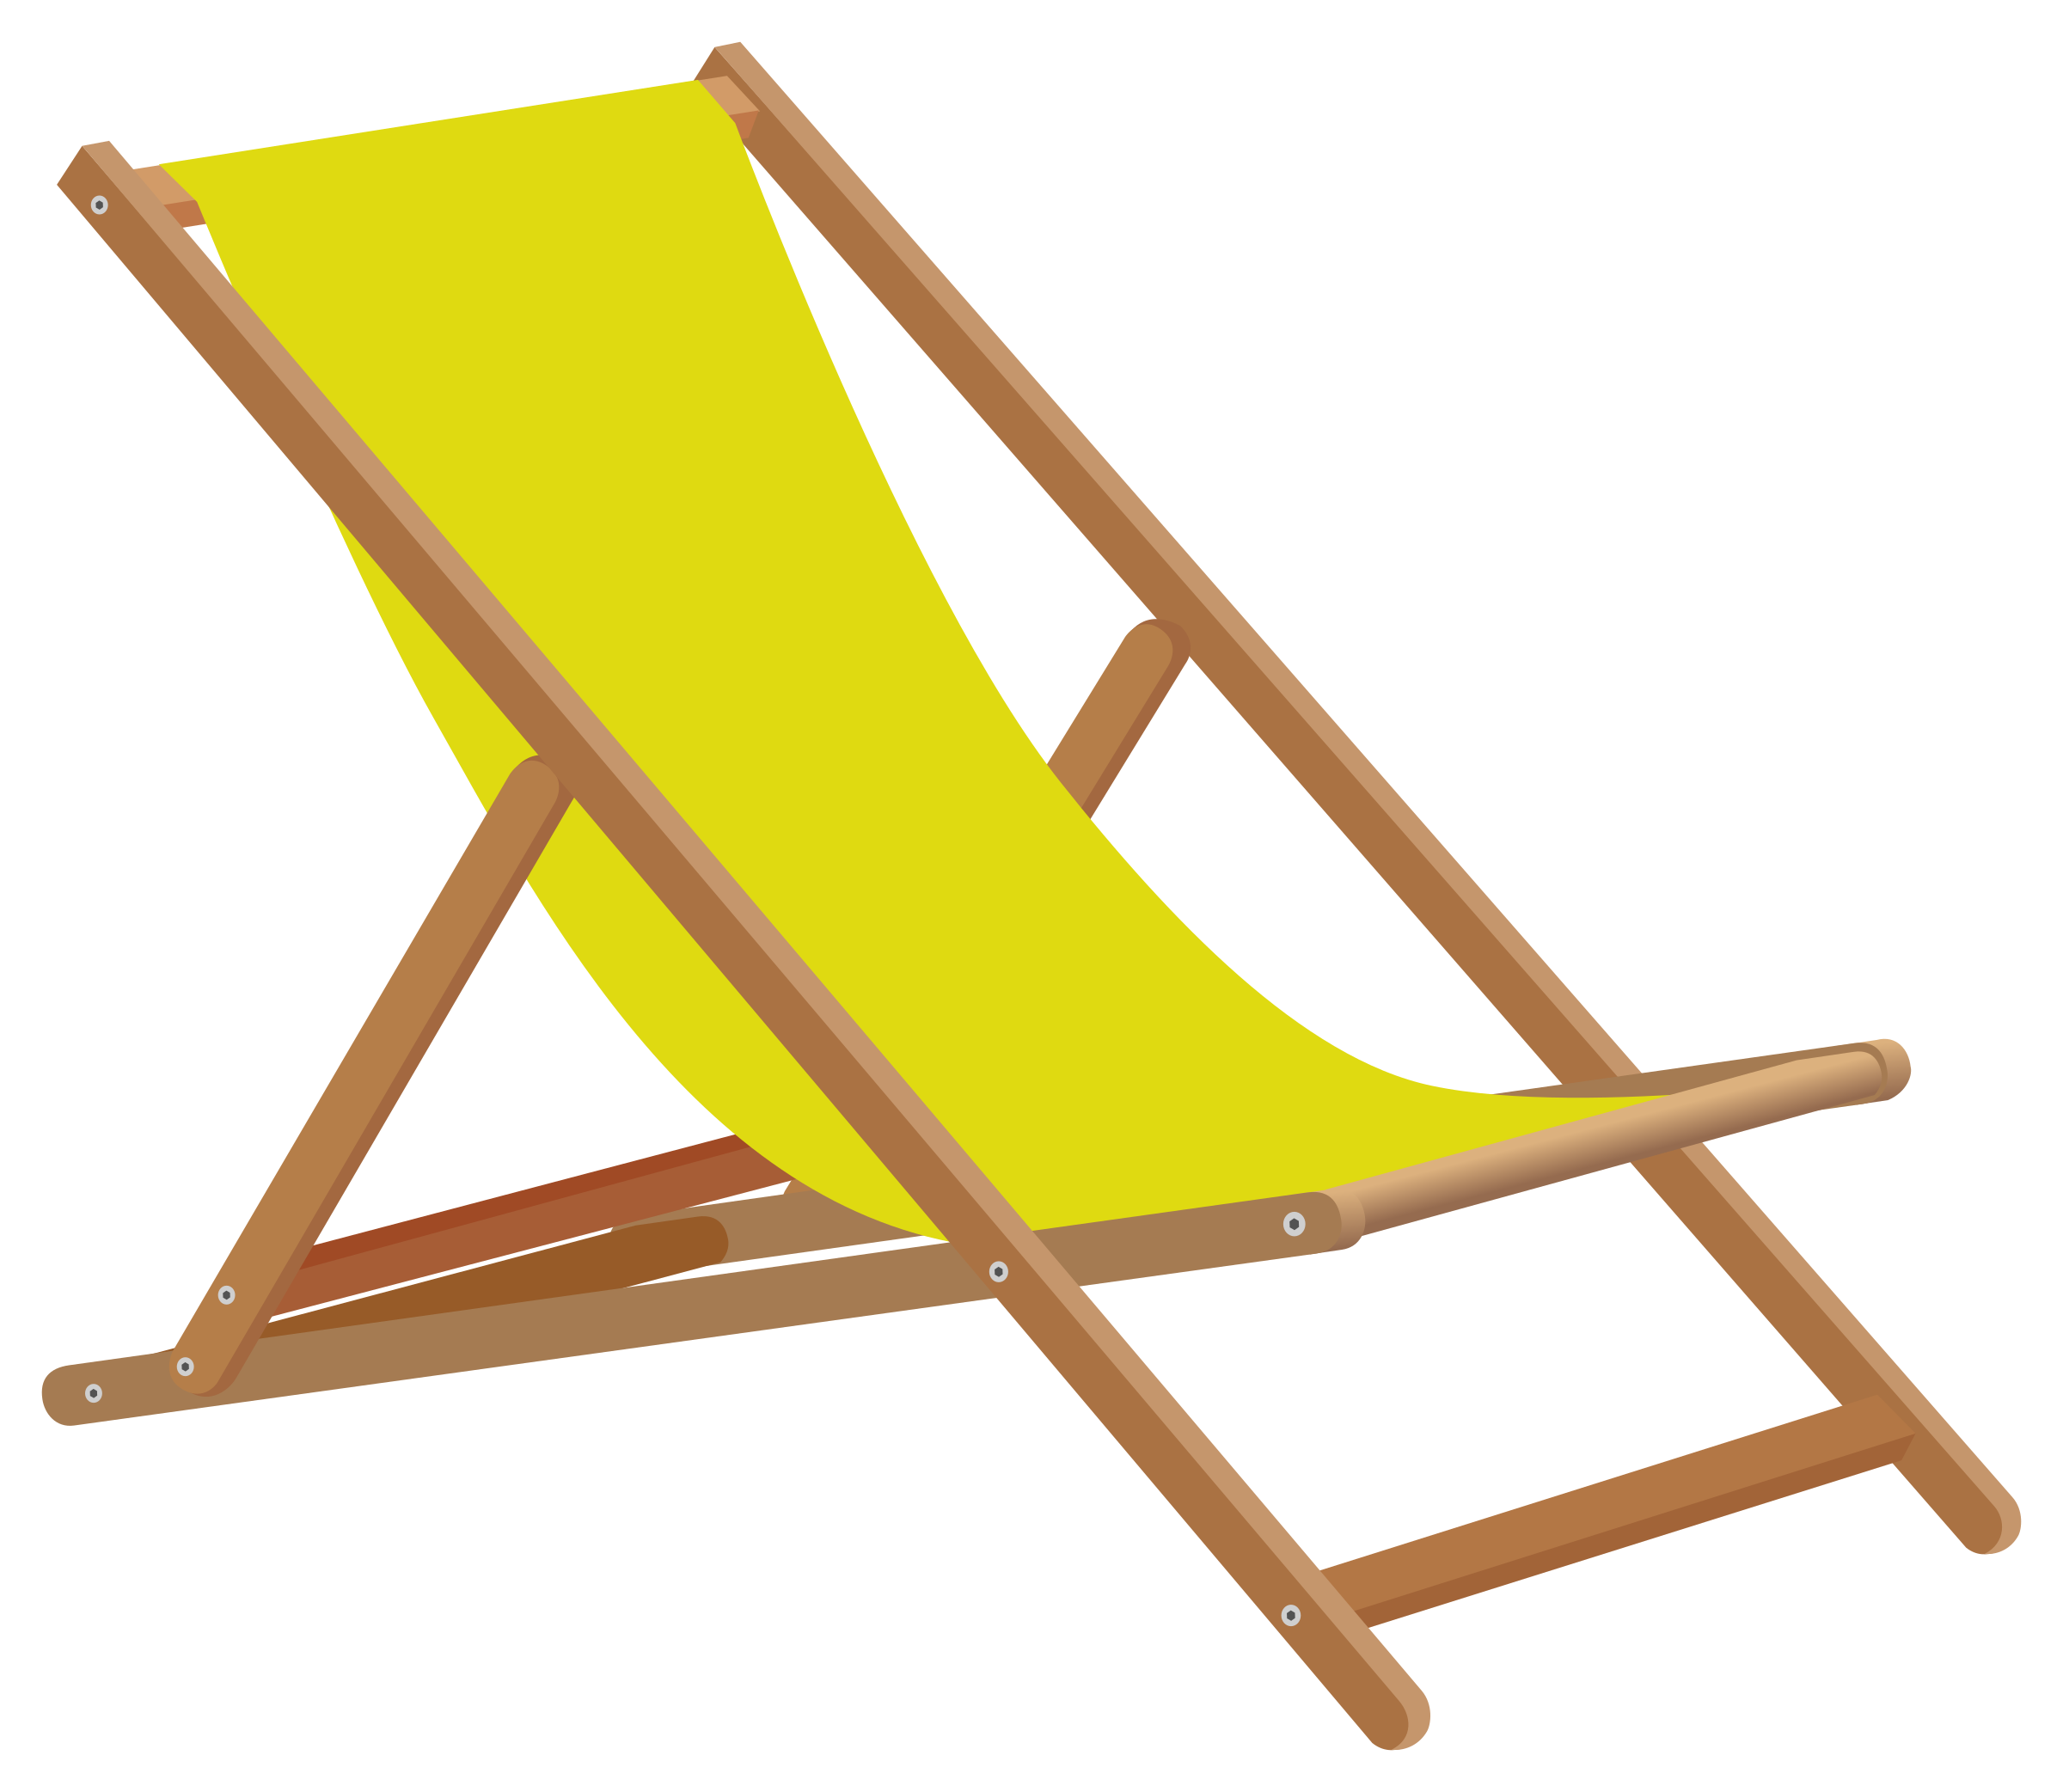 clipart beach chair. Black Bedroom Furniture Sets. Home Design Ideas